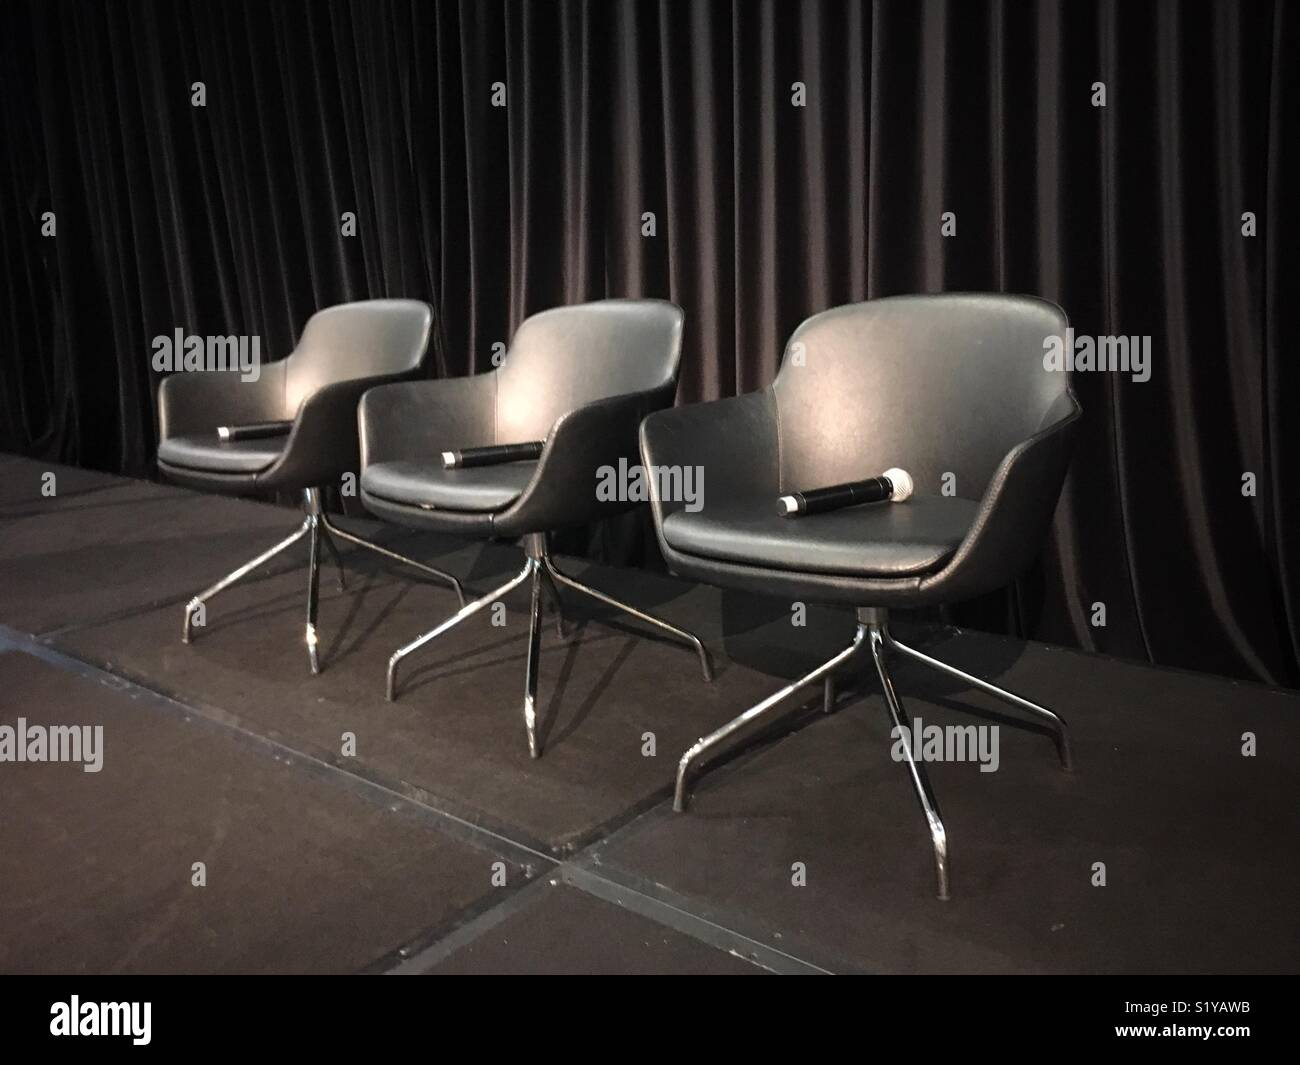 Three chairs with microphones against a black curtain. - Stock Image